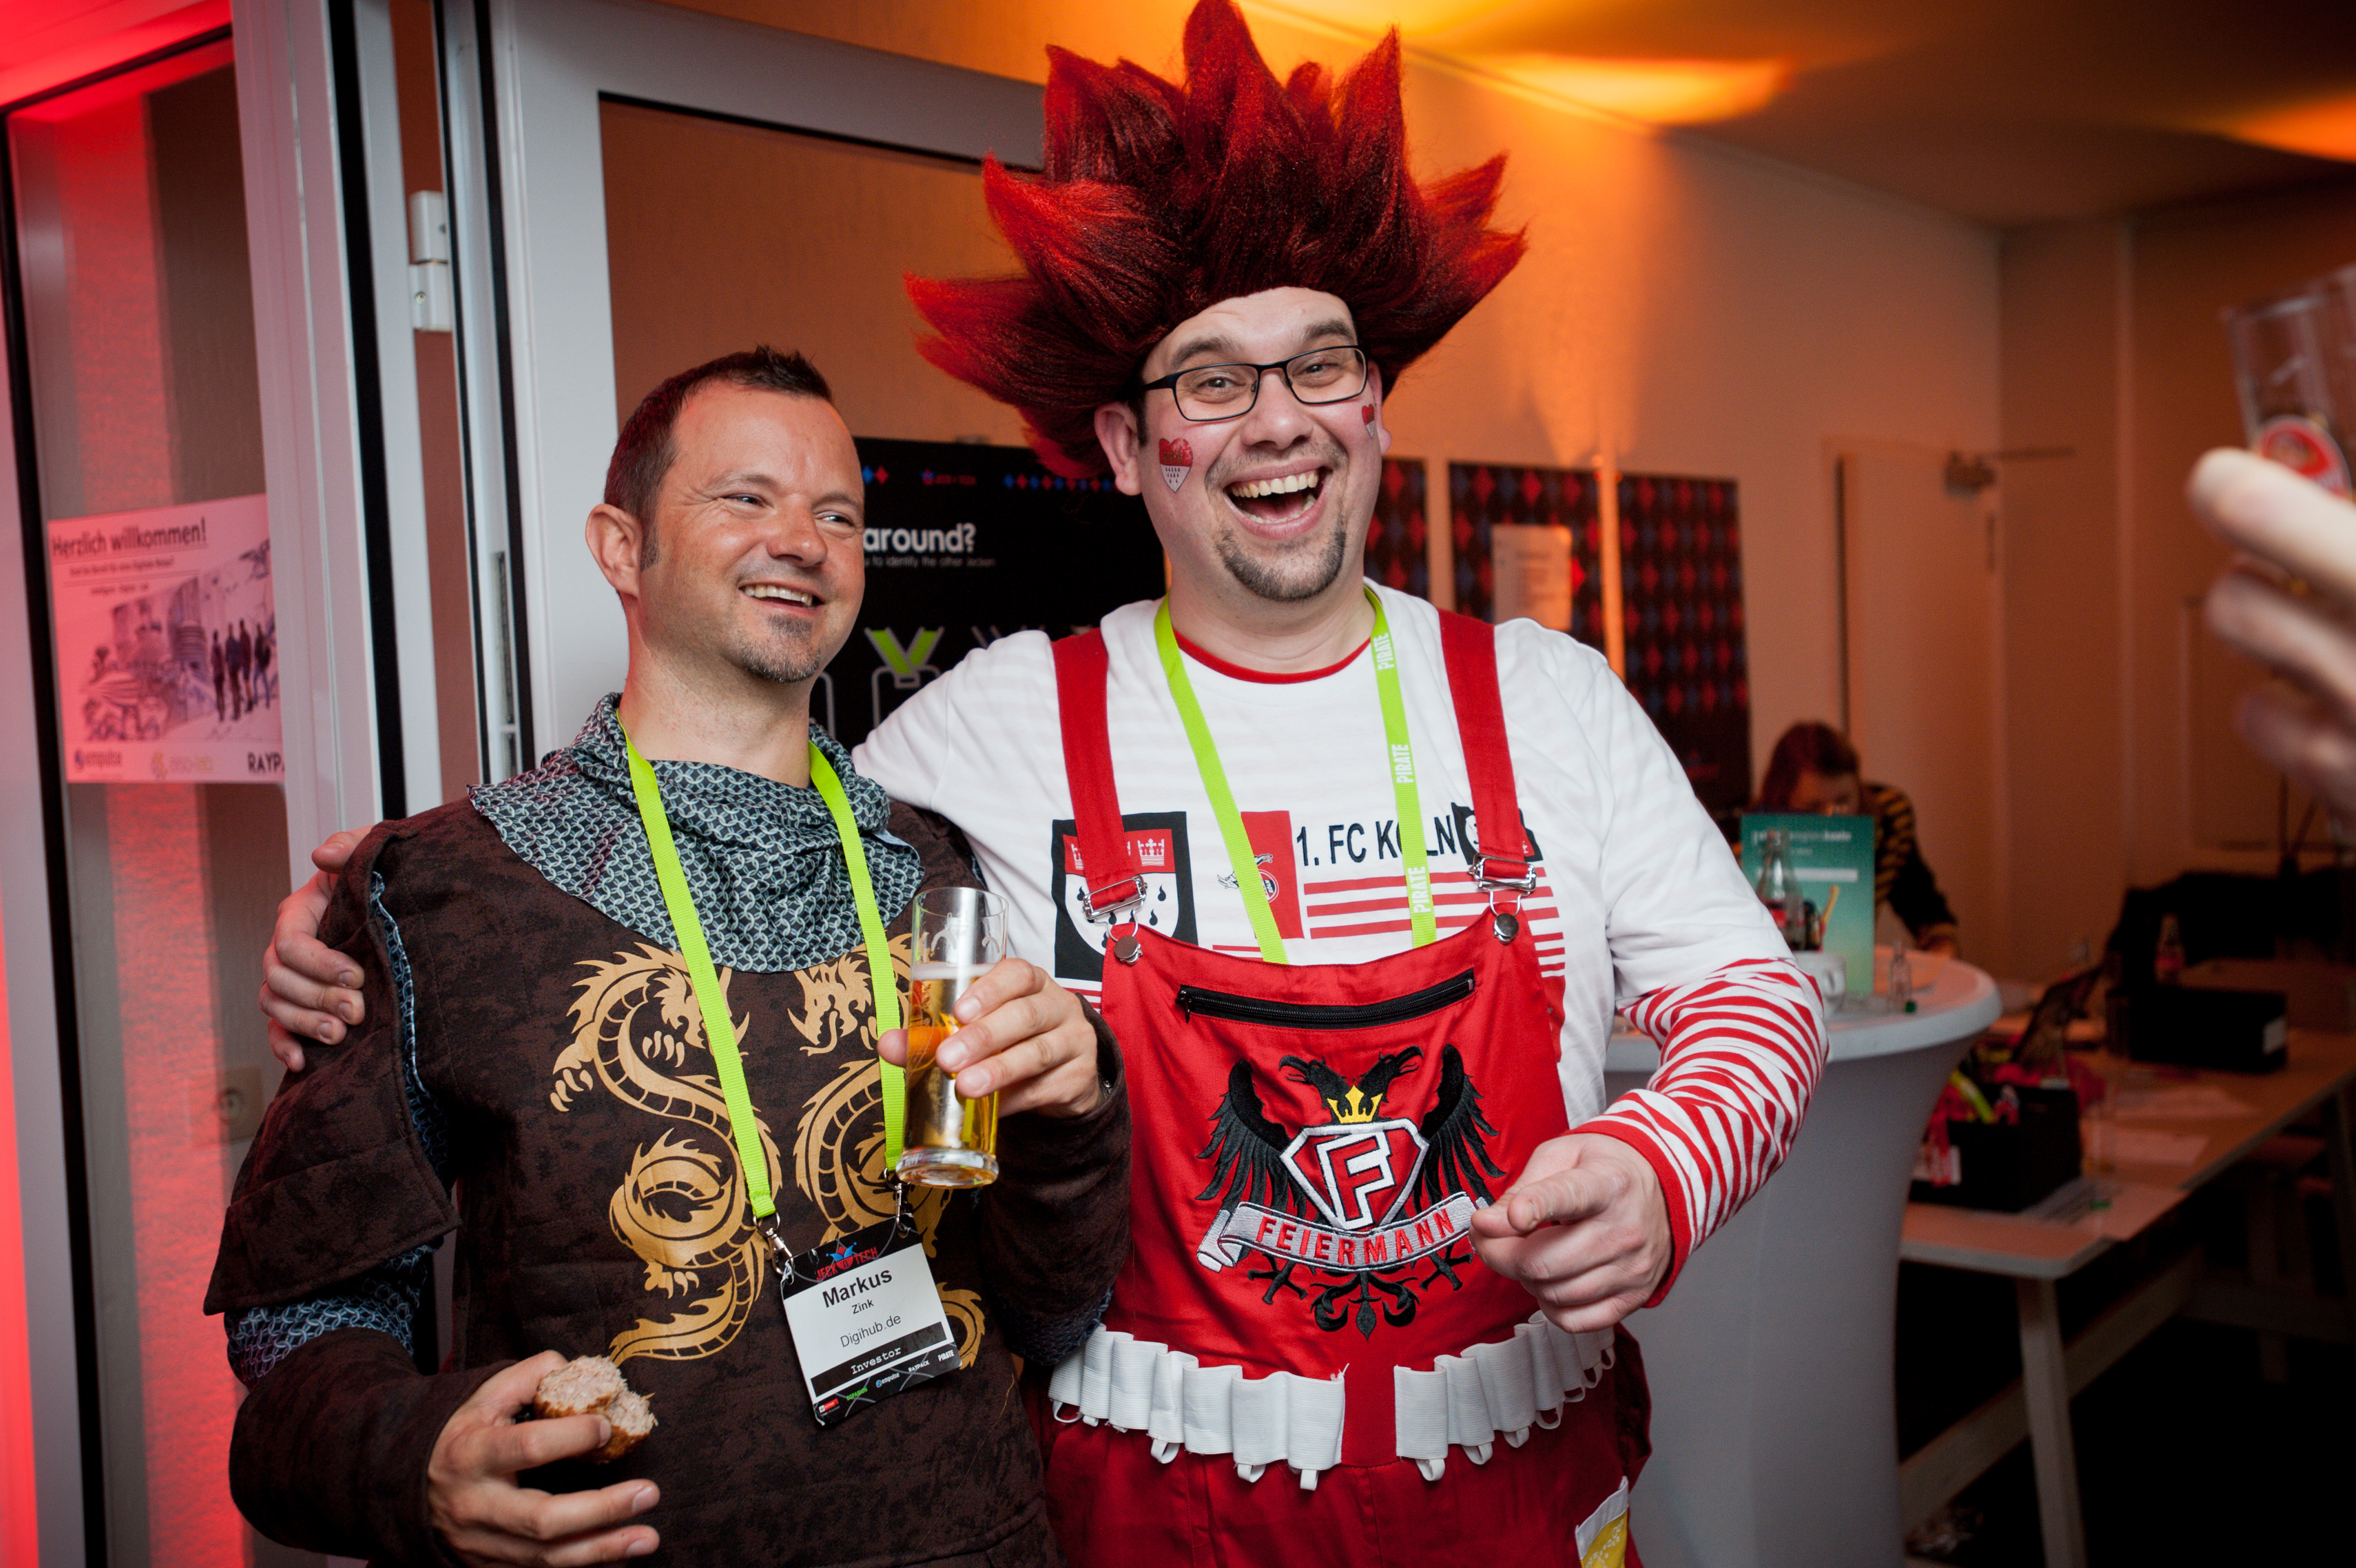 """Jeck'n'Tech is the premier event in the Cologne Karneval uniting Tech and Cologne Tradition. A must-go-to event. Great people, great fun. Can't wait to go!"""